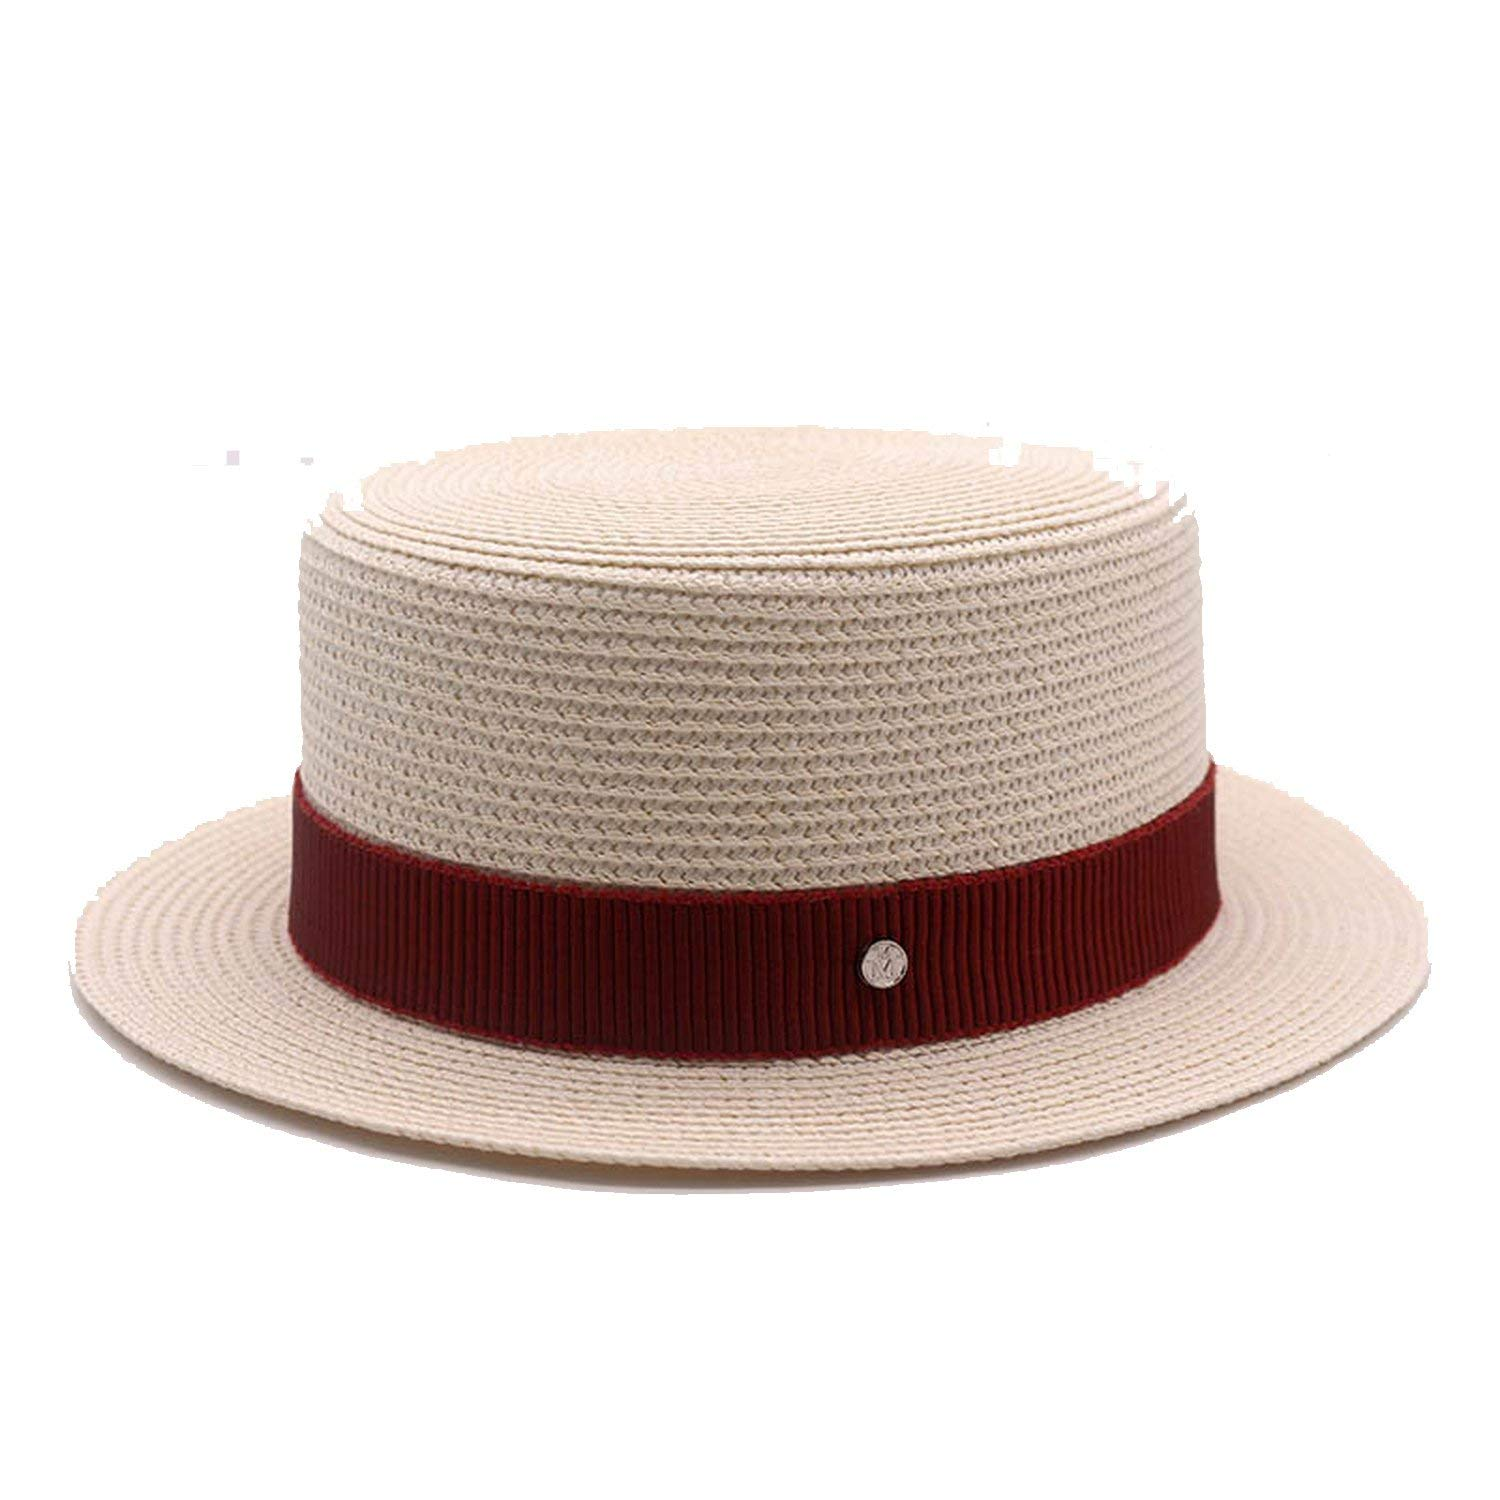 845e73510b9 Romantic moments Women s Beach Sun Hats Quality 2018 New Flat top Straw  Summer Fashion Shade Sunscreen Sun Hat